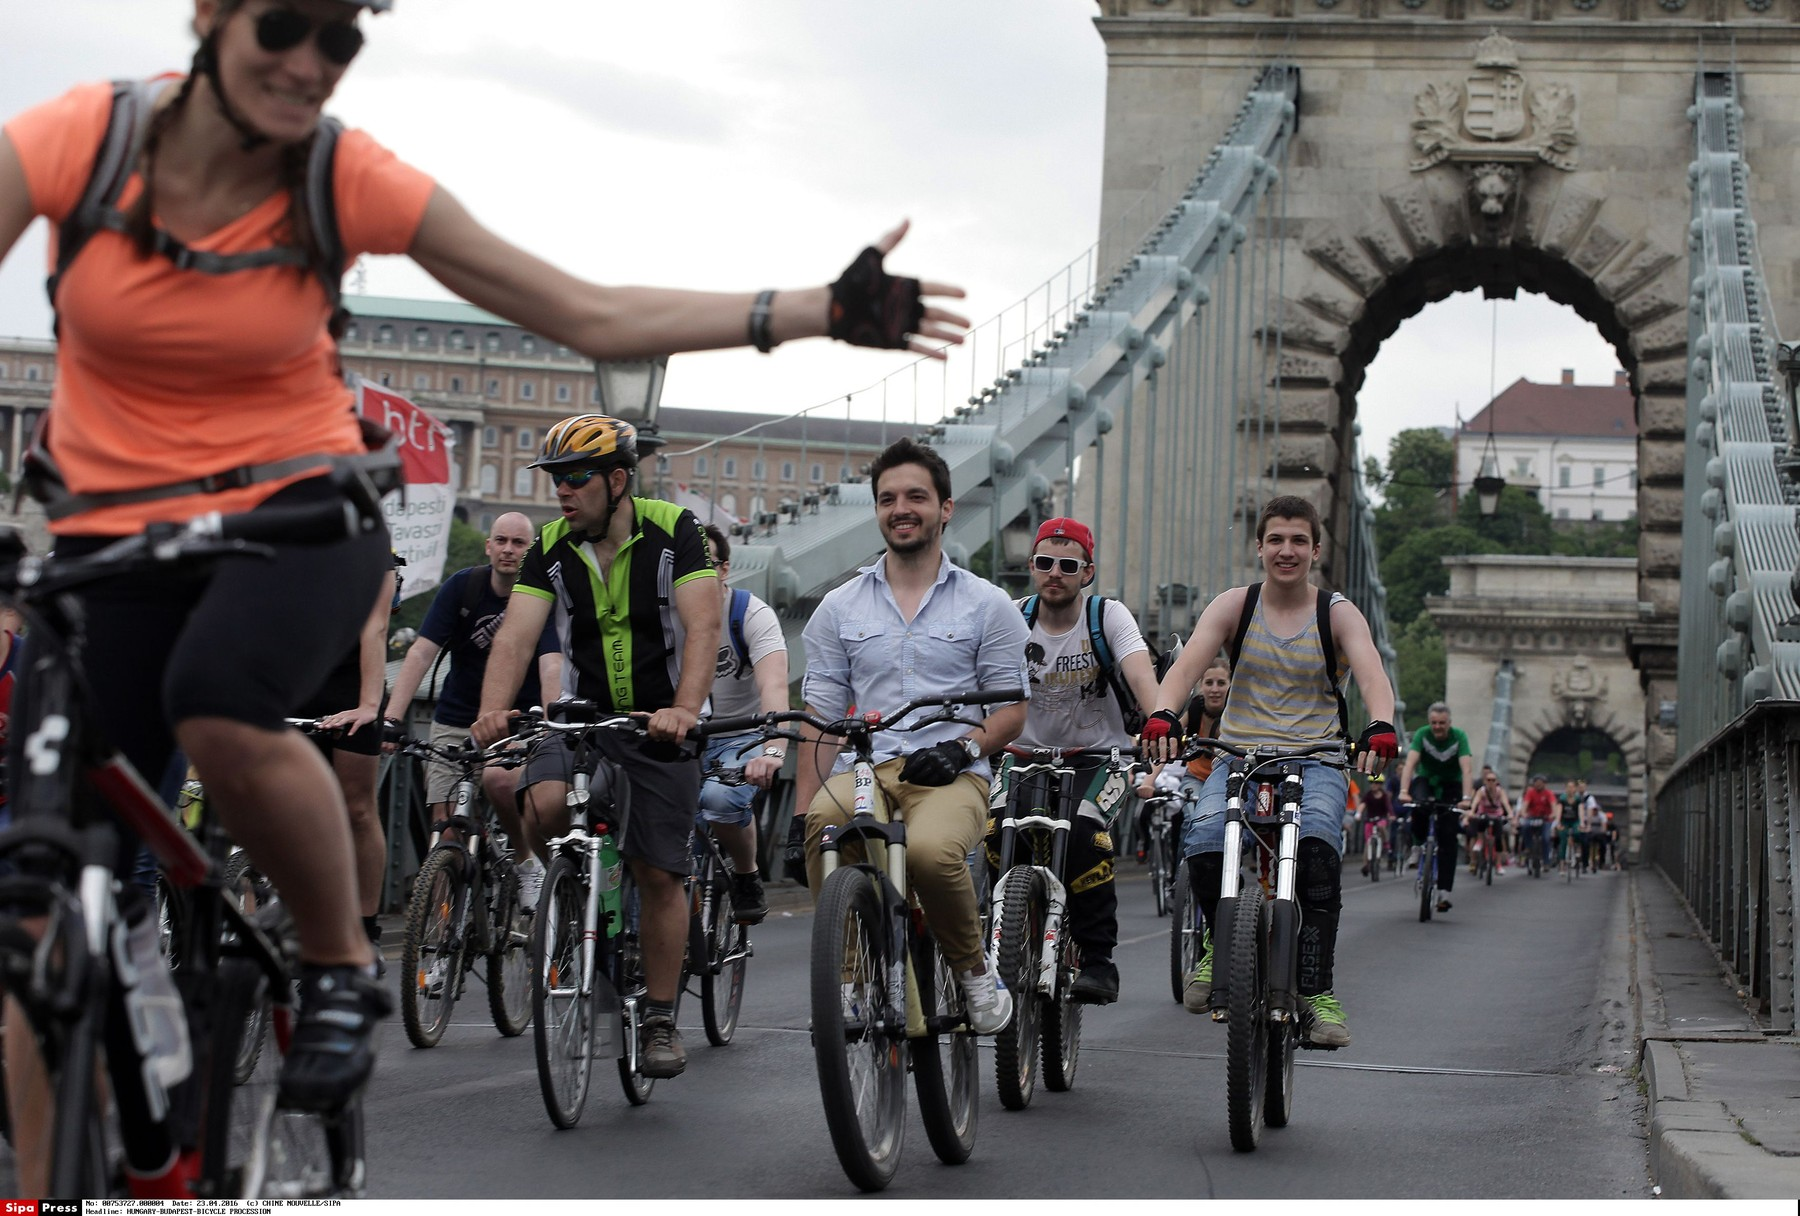 Bicycle riders attend a large-scale bicycle procession called I Like Budapest organized by Hungarian Cyclists' Club in Budapest, Hungary, April 23, 2016.